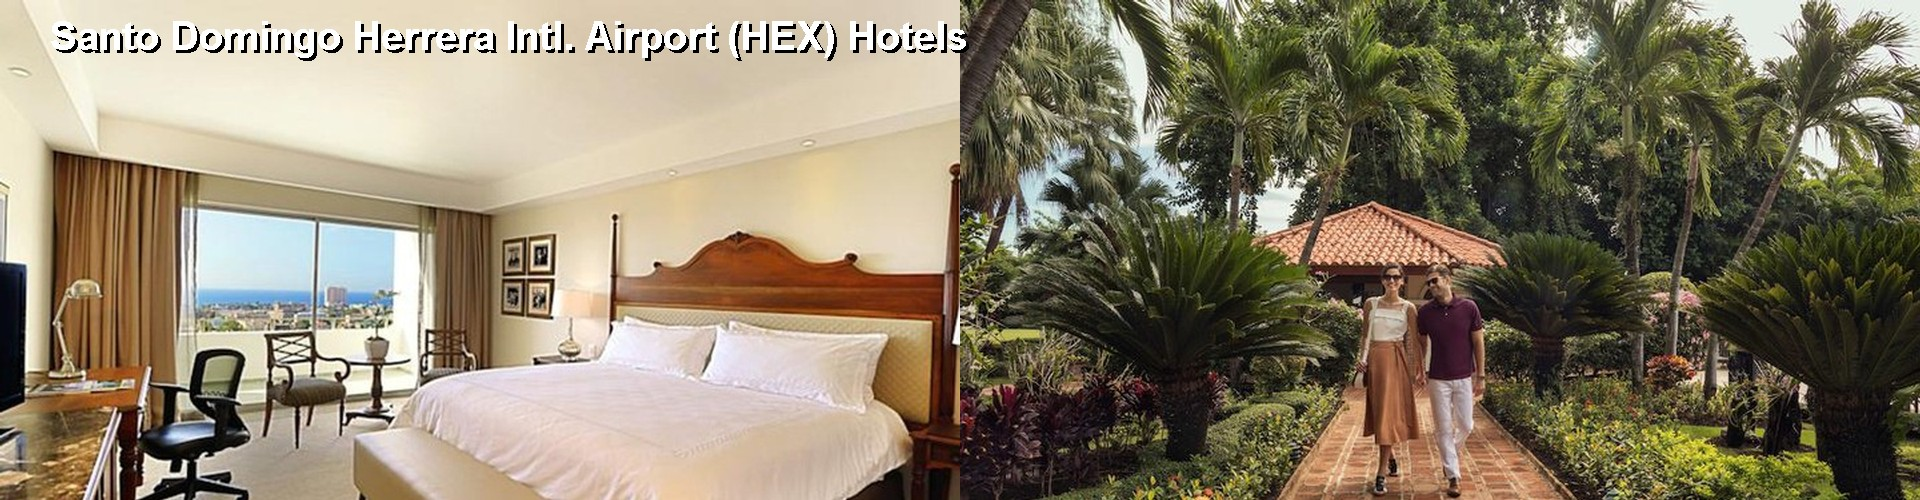 5 Best Hotels Near Santo Domingo Herrera Intl Airport Hex